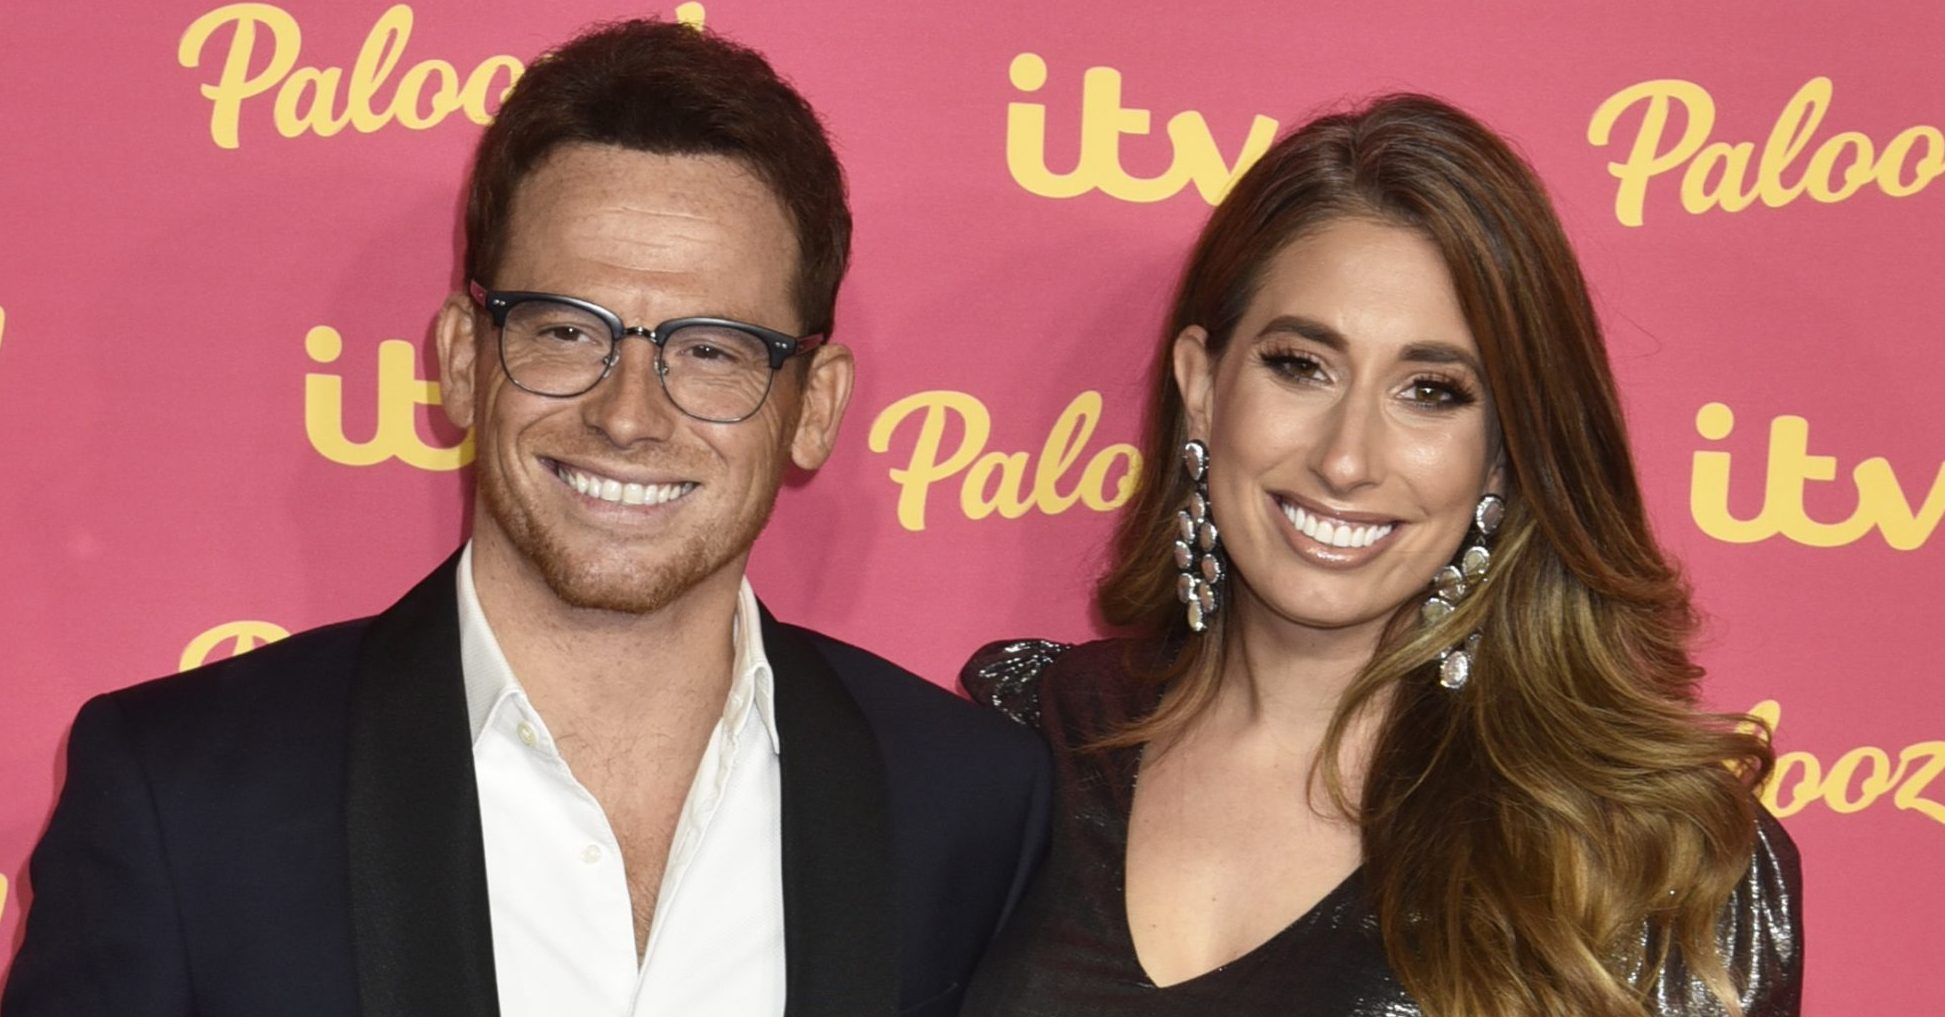 Stacey Solomon has the 'best day of her life' as she puts full make-up on boyfriend Joe Swash